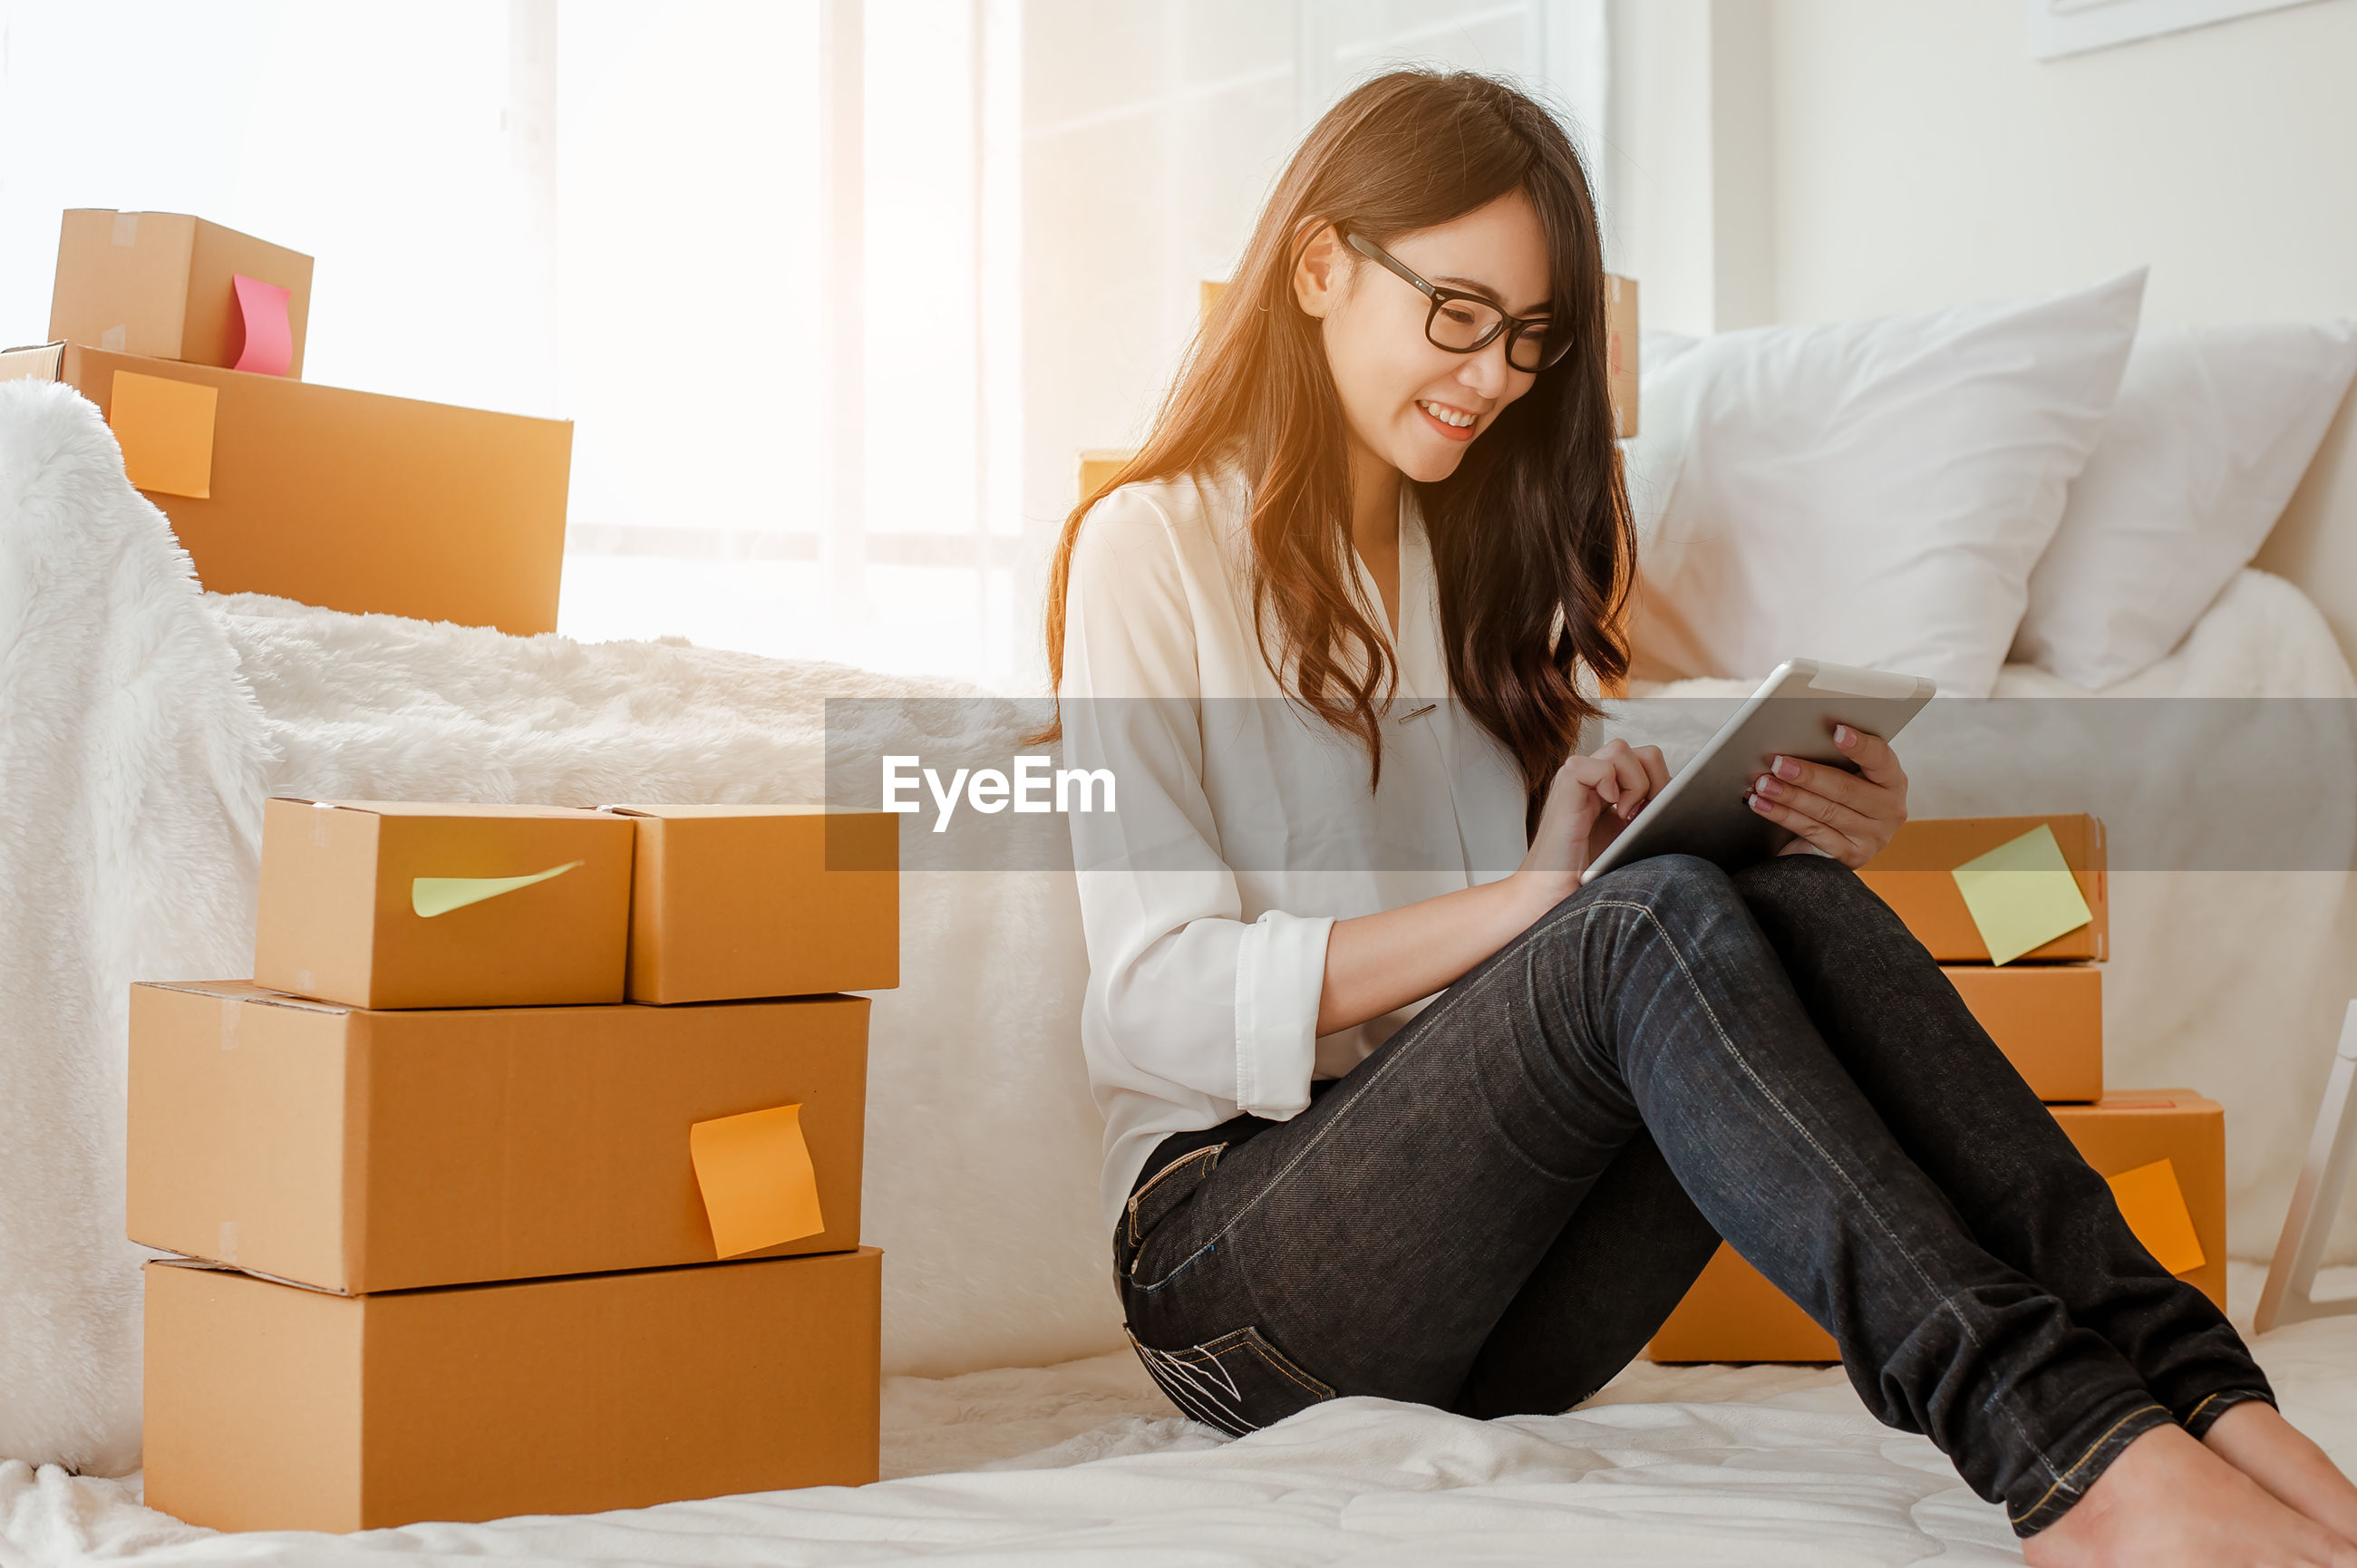 YOUNG WOMAN USING MOBILE PHONE WHILE SITTING IN BOX